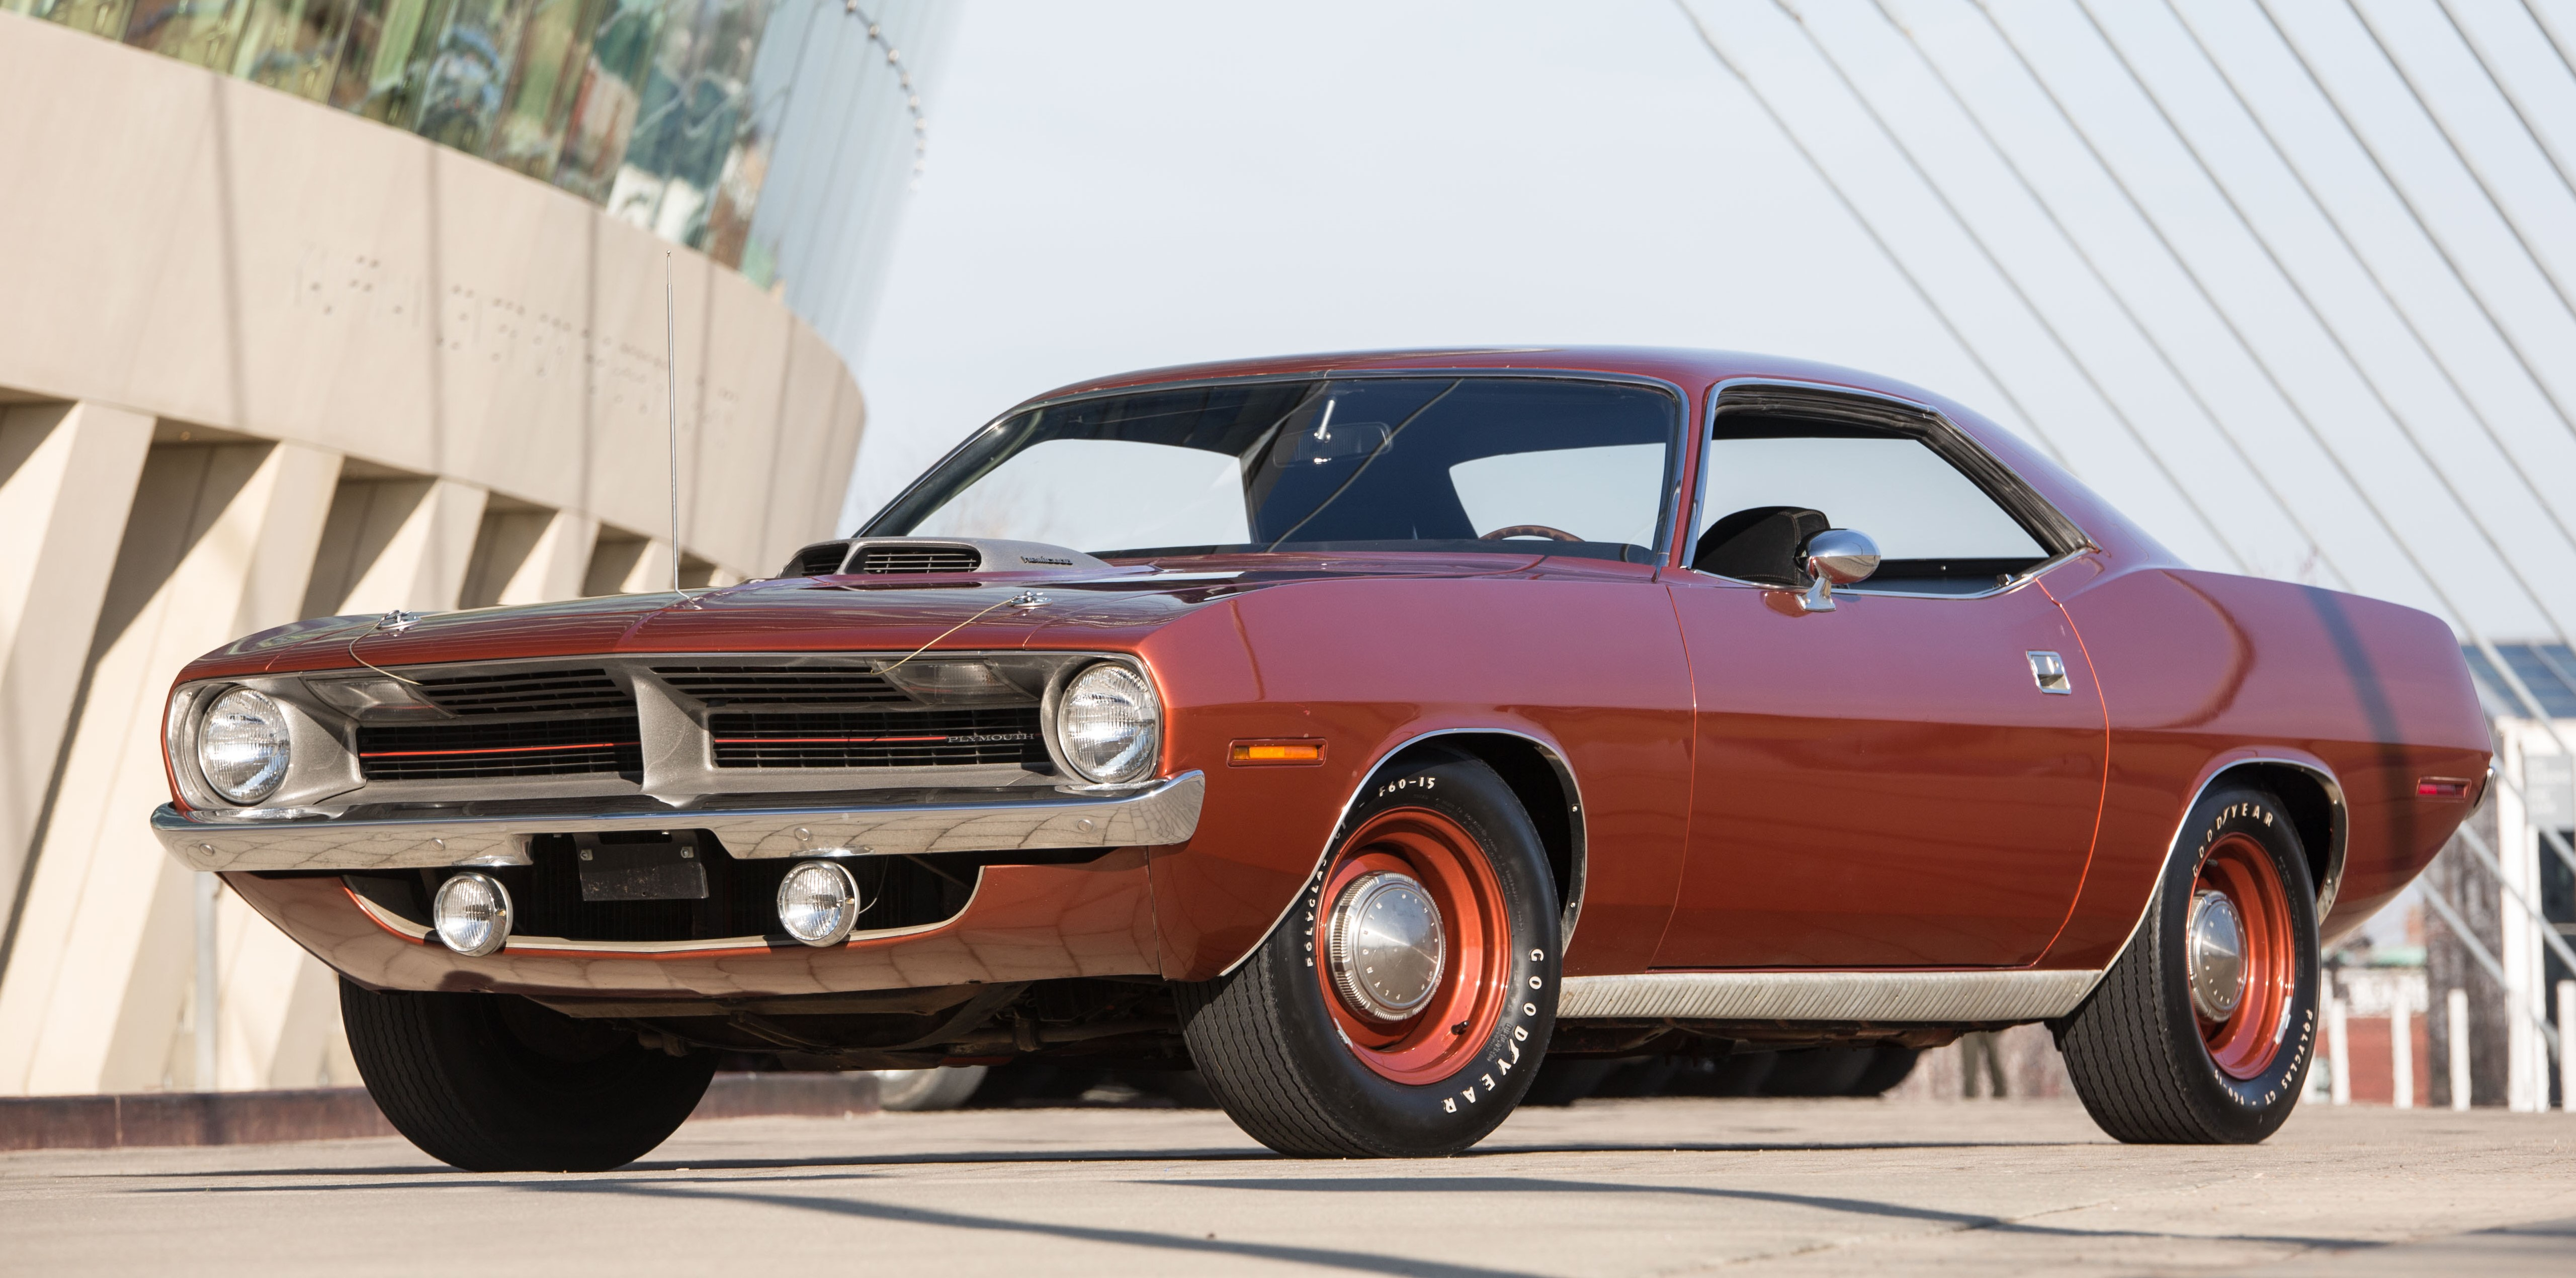 The 1970 Hemi 'Cuda is an original, low-mileage survivor